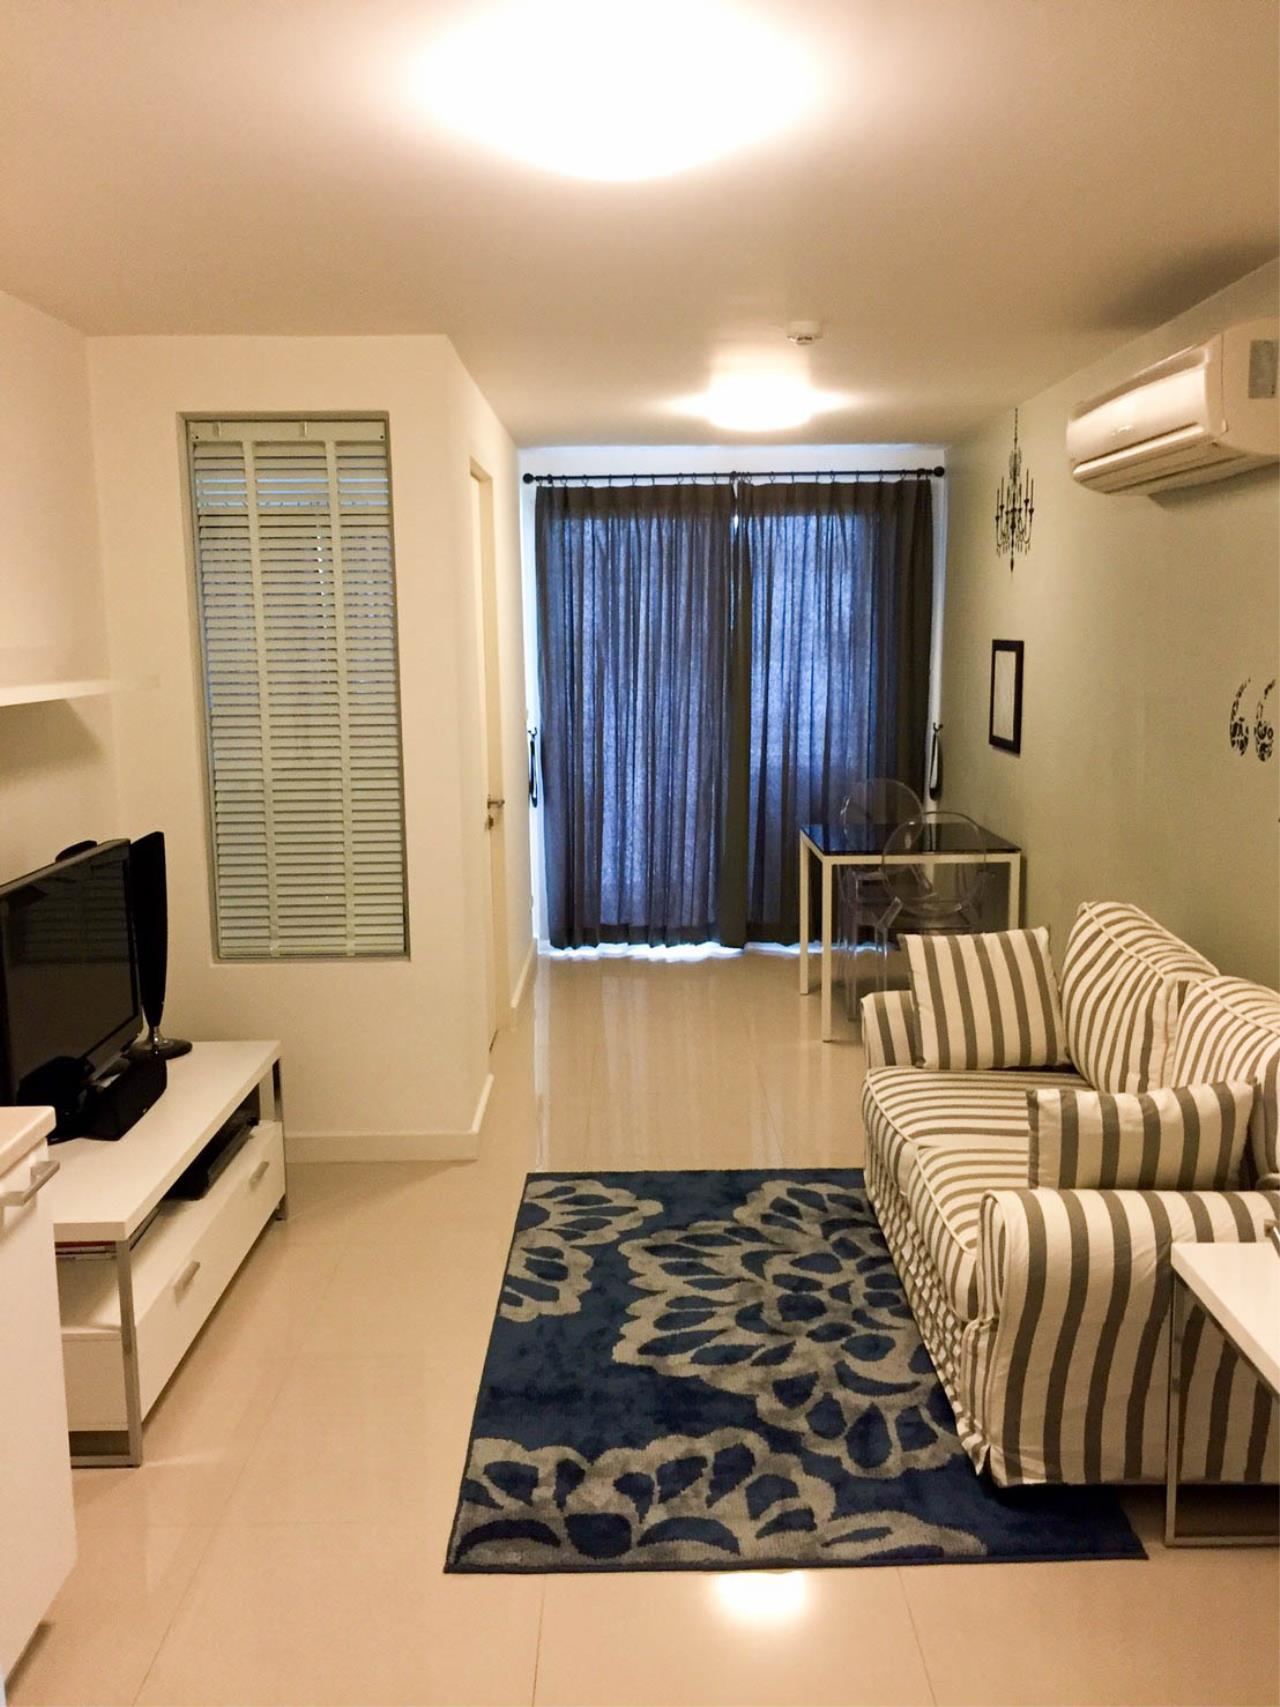 RE/MAX Properties Agency's 1 Bedroom 37 Sq.m for rent at Clover Thonglor 3